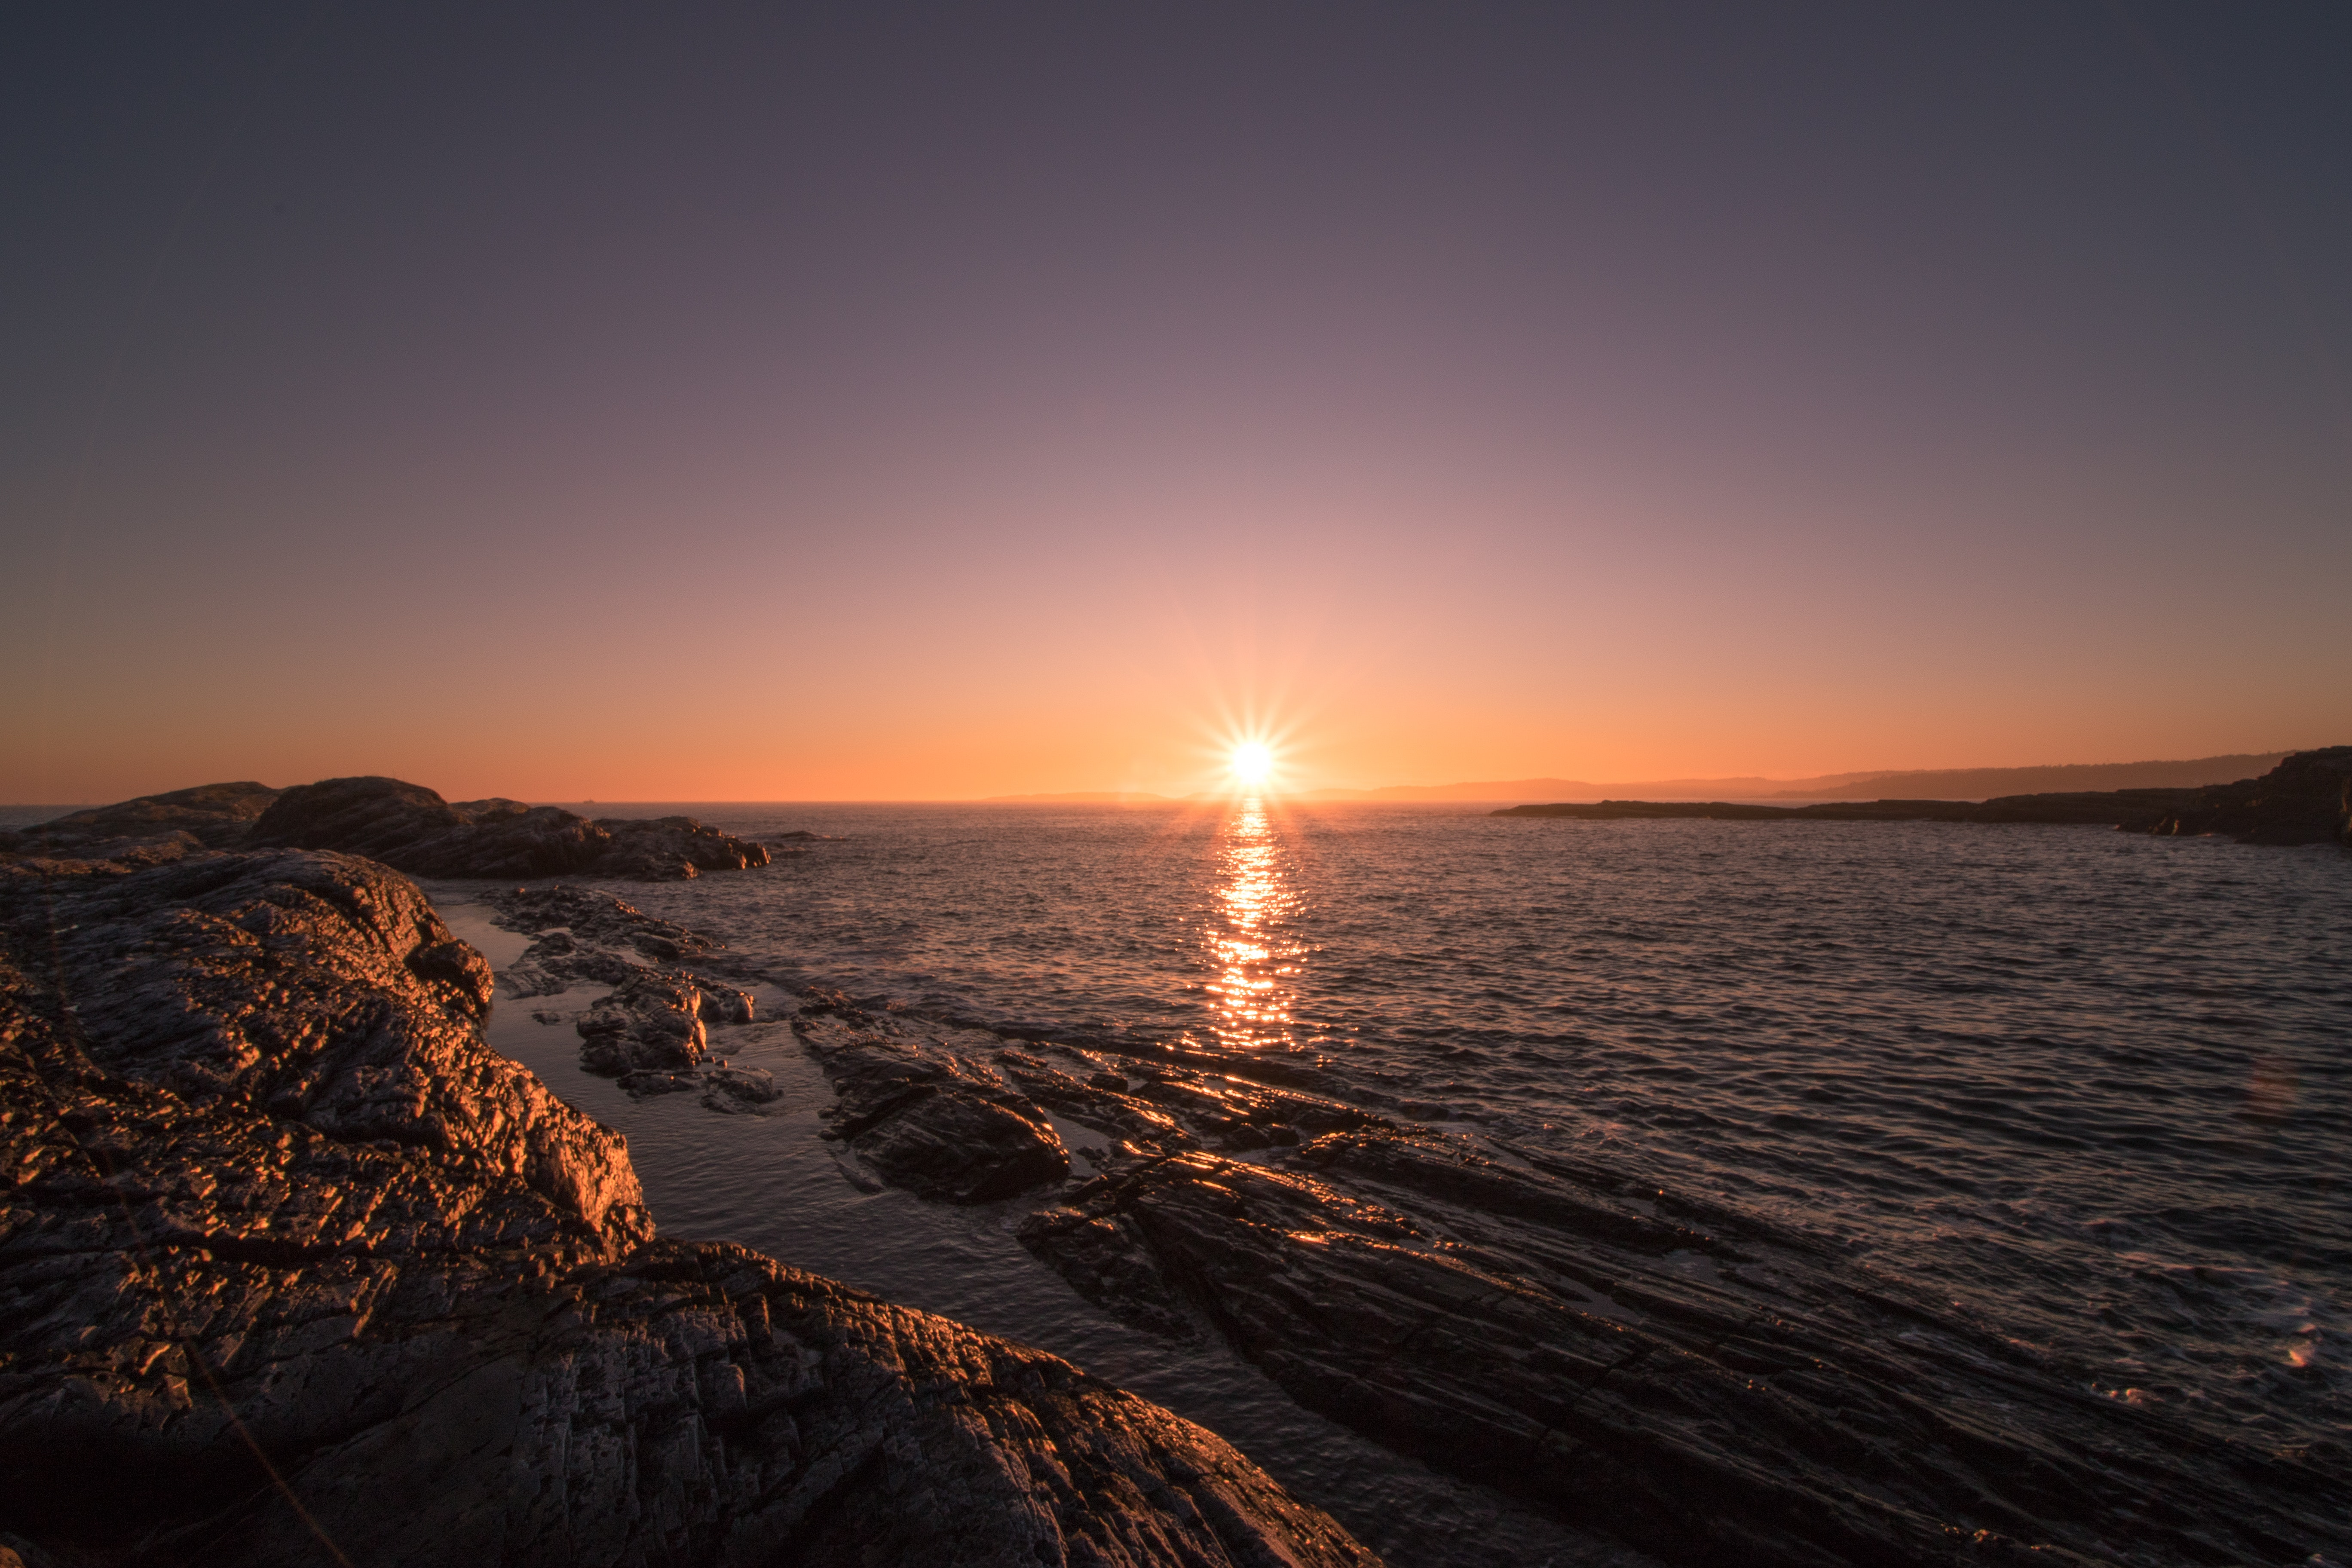 Brown Rocks Beside Body of Water during Sunset, Beach, Scenic, Sea, Seascape, HQ Photo